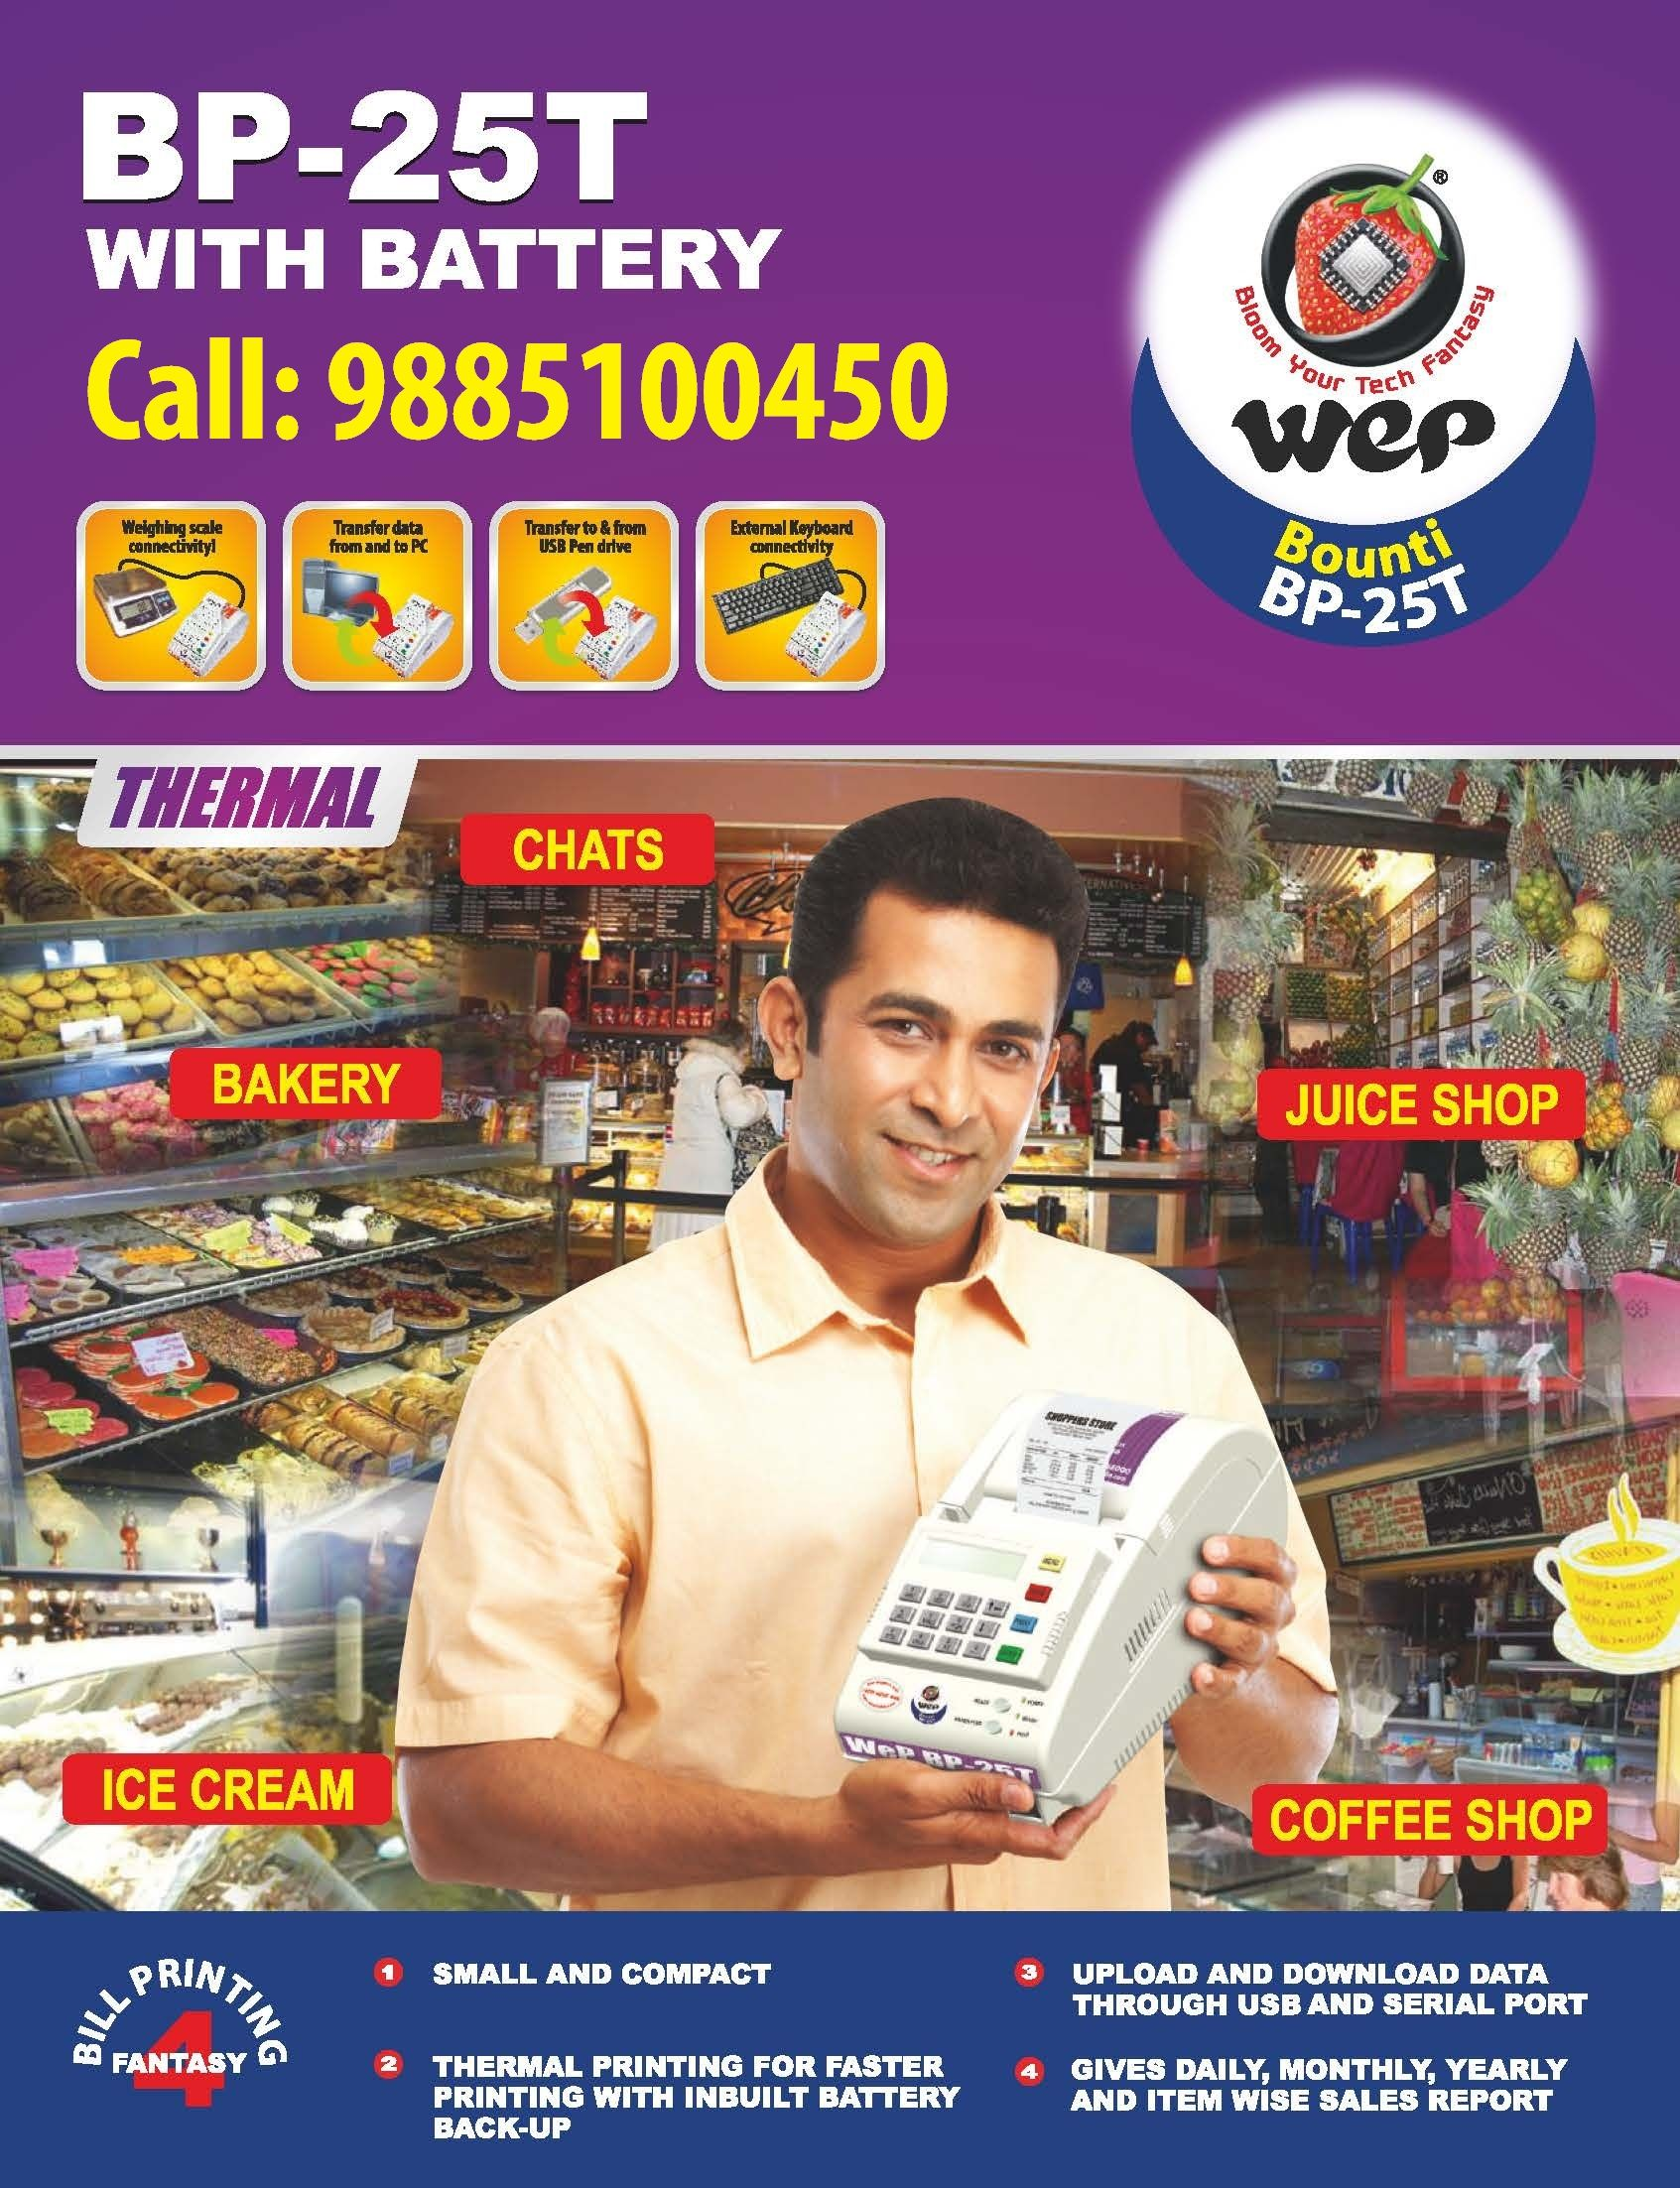 Shops Wep Billing Machine Bp 25T Hyderabad Suitable For Bakery Chicken Shop